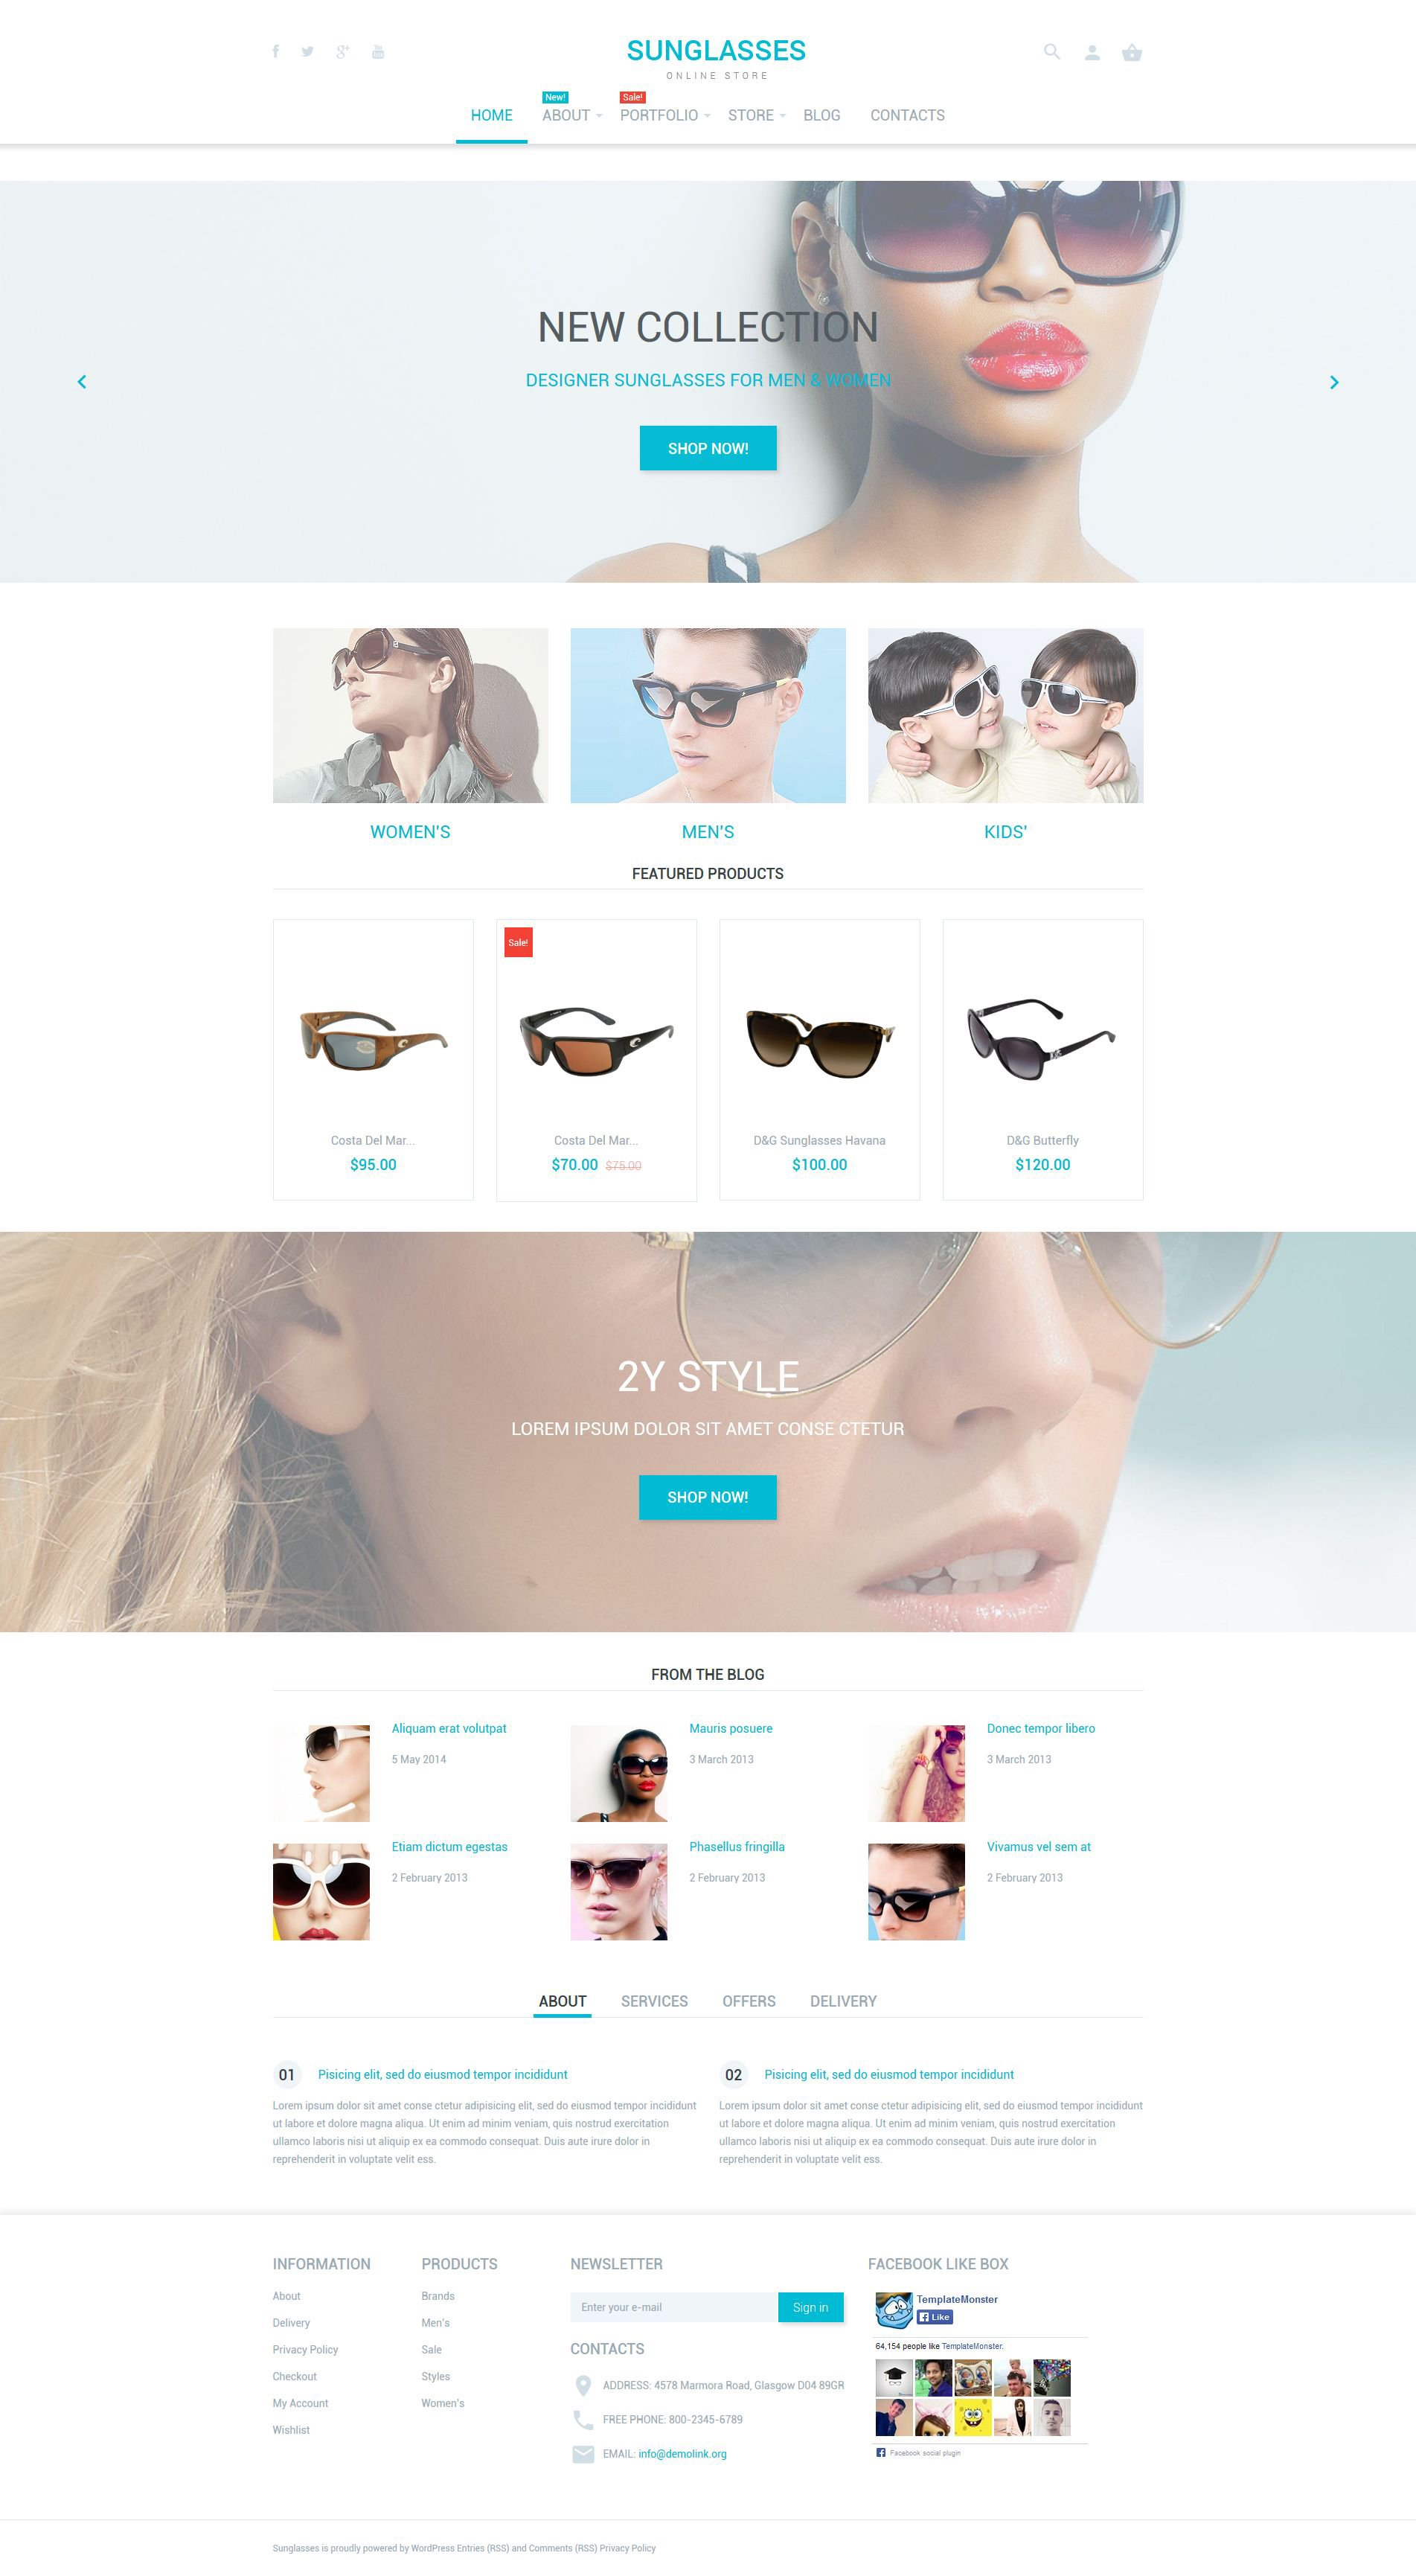 The Sunglasses WooCommerce Design 53889, one of the best WooCommerce themes of its kind (wedding, most popular), also known as sunglasses WooCommerce template, sun WooCommerce template, glasses WooCommerce template, accessories WooCommerce template, watches WooCommerce template, umbrellas WooCommerce template, wallets WooCommerce template, clothing WooCommerce template, belts WooCommerce template, jewelry WooCommerce template, necklaces WooCommerce template, rings WooCommerce template, earrings WooCommerce template, eyewear WooCommerce template, dresses WooCommerce template, shoes WooCommerce template, sandals WooCommerce template, handbags WooCommerce template, hair WooCommerce template, carves WooCommerce template, hats and related with sunglasses, sun, glasses, accessories, watches, umbrellas, wallets, clothing, belts, jewelry, necklaces, rings, earrings, eyewear, dresses, shoes, sandals, handbags, hair, carves, hats, etc.